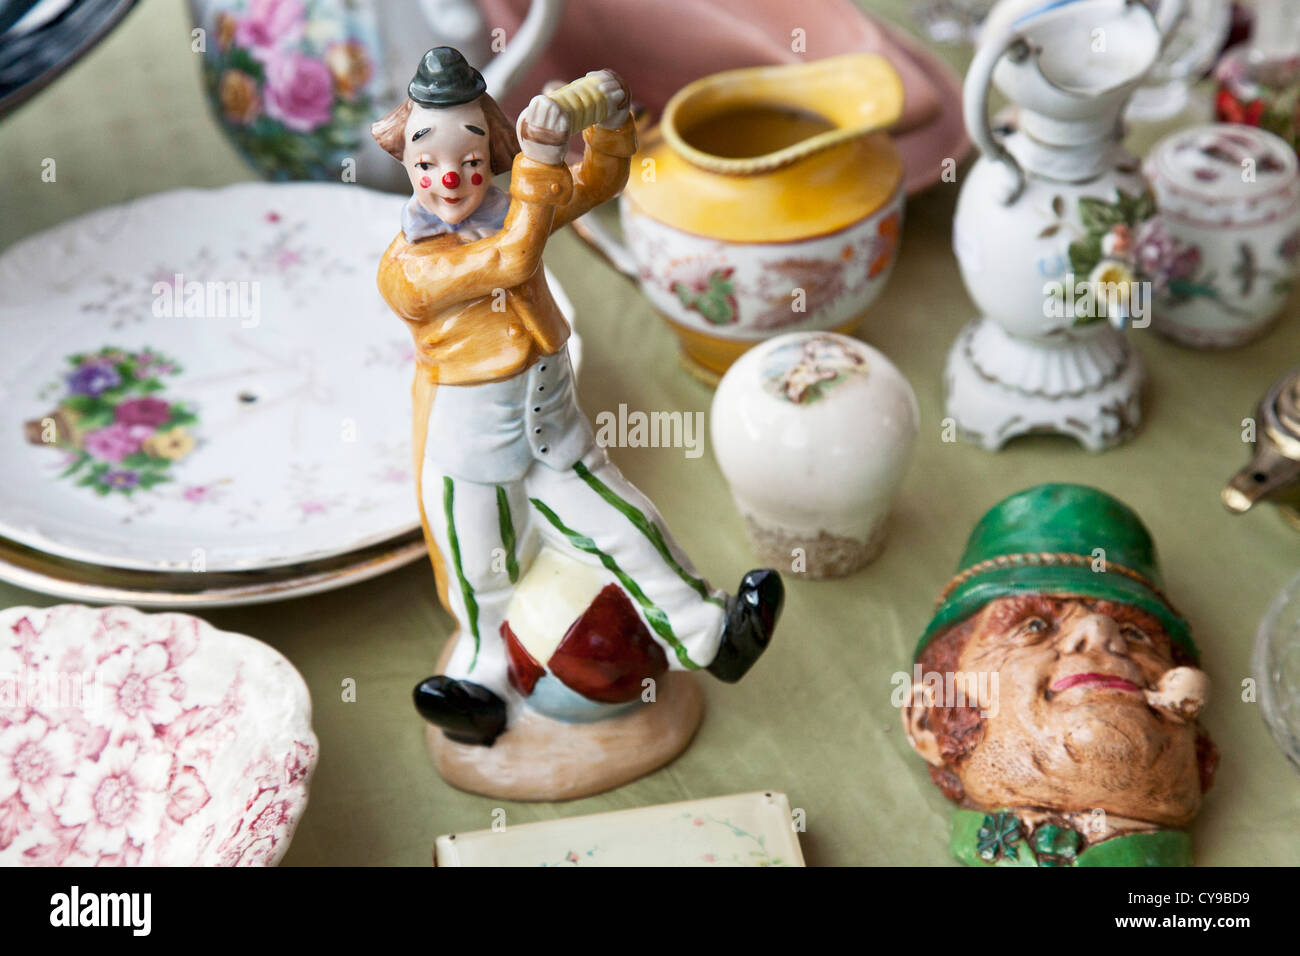 charming Victorian porcelain clown figurine with tiny bowler hat & squeeze box displayed with other china at - Stock Image